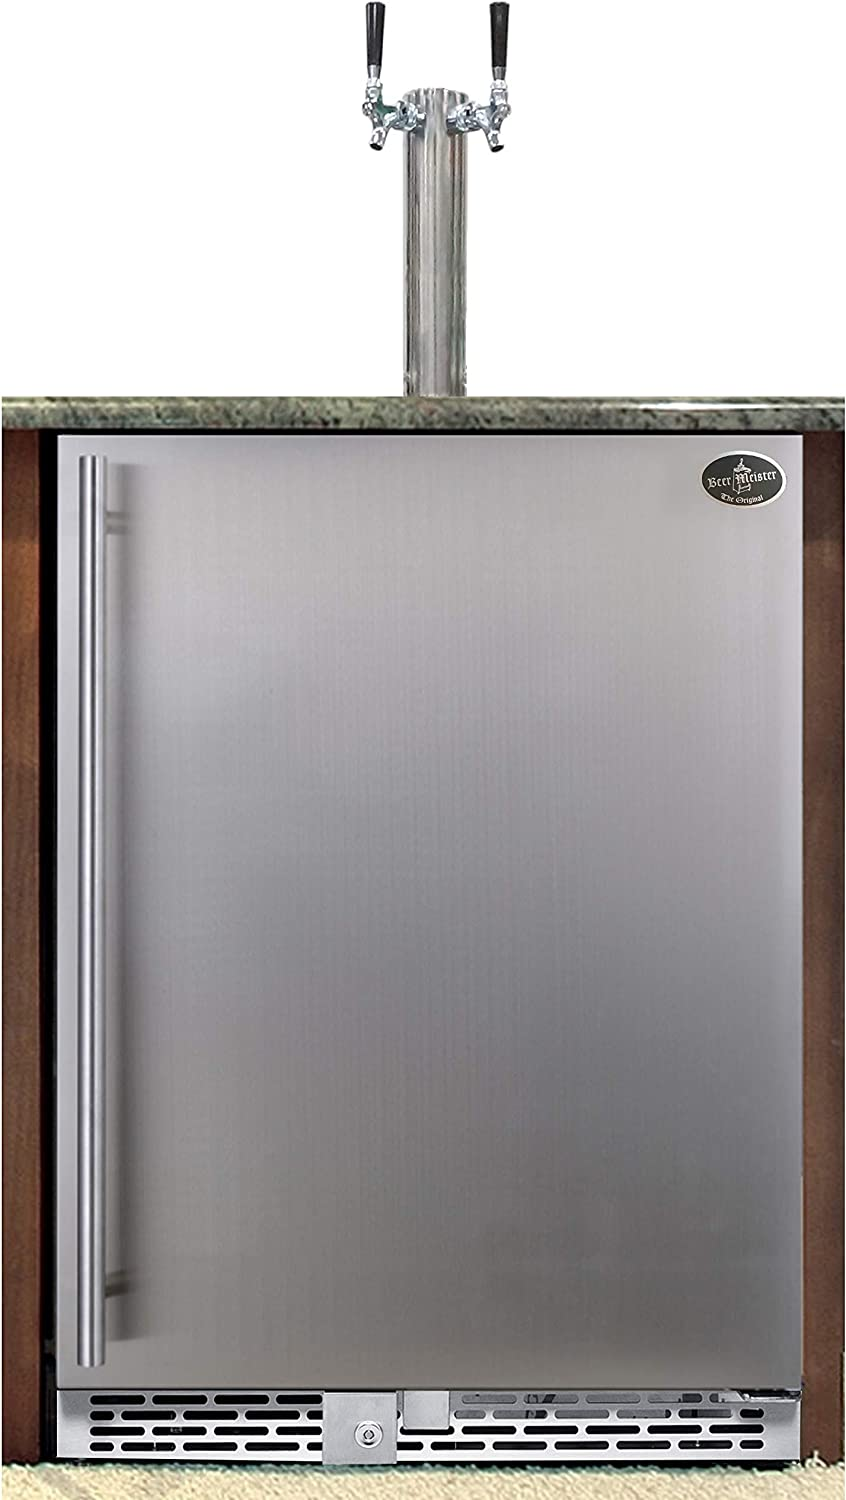 Beer Meister dual tower with stainless Boston Mall - Beauty products door built-in kegerator